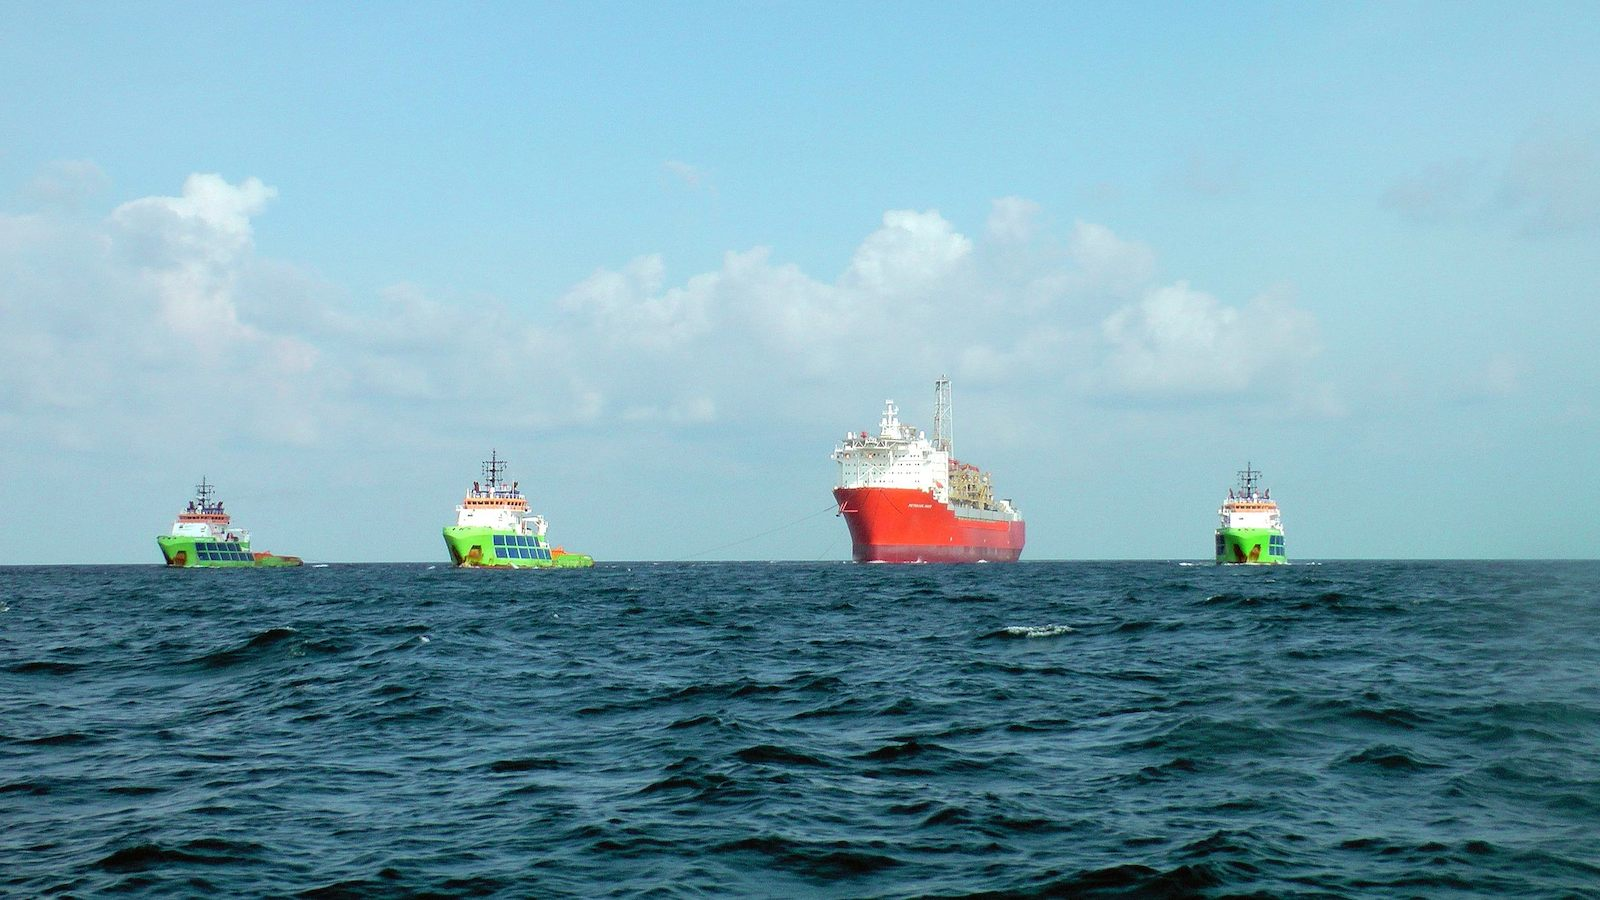 Fairmount tugs succesfully delivered FPSO Petrojarl Knarr to Norway